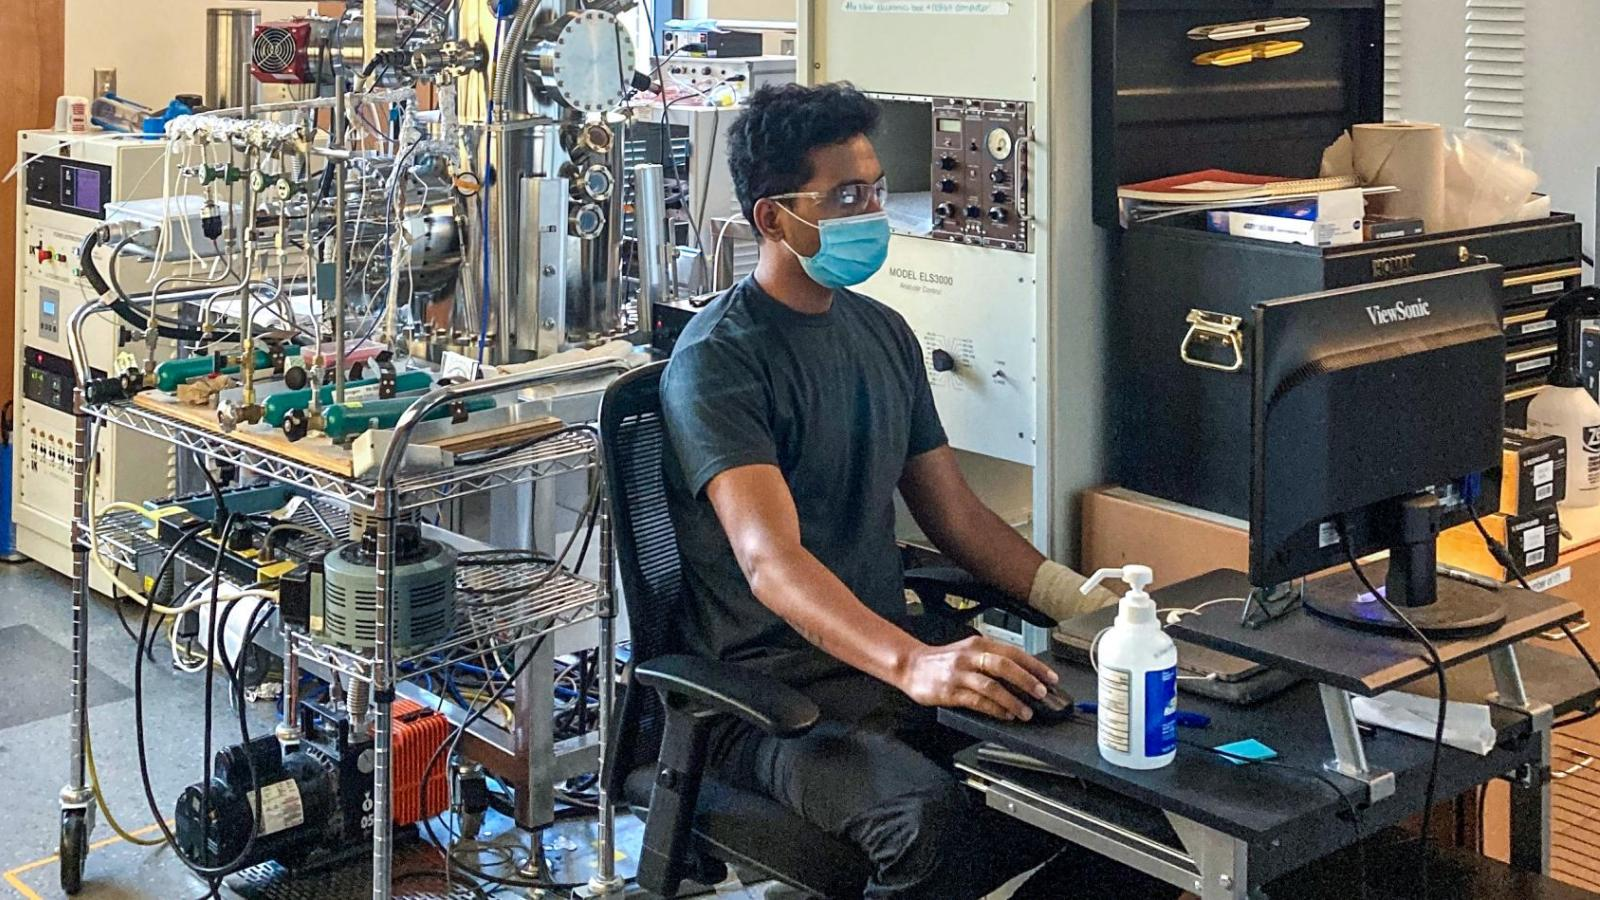 Ashutosh Mishra working in the Medlin Lab with PPE